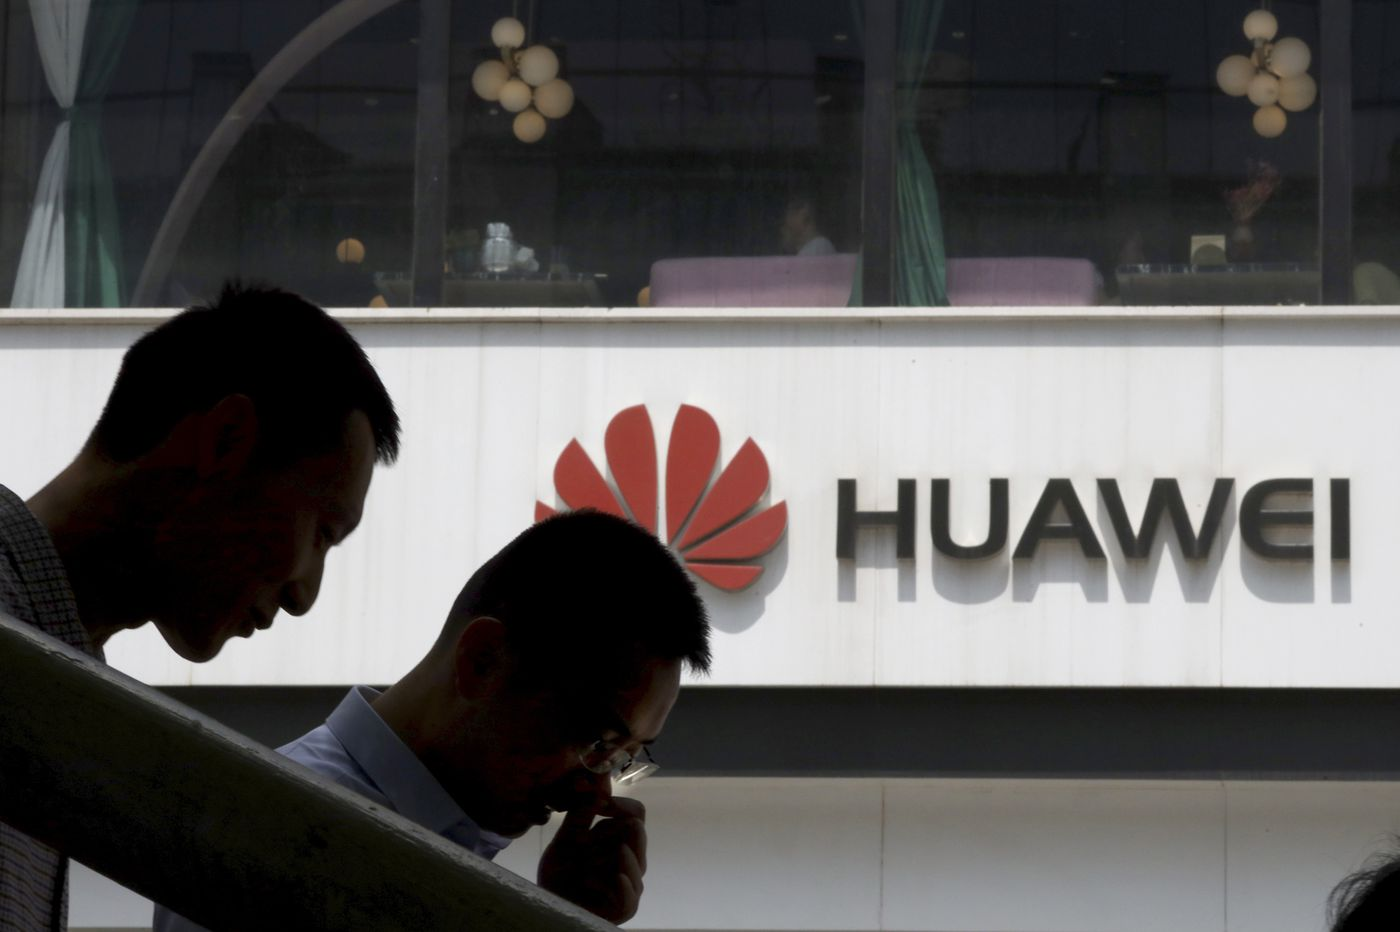 Leaked documents reveal Huawei's secret operations to build North Korea's wireless network